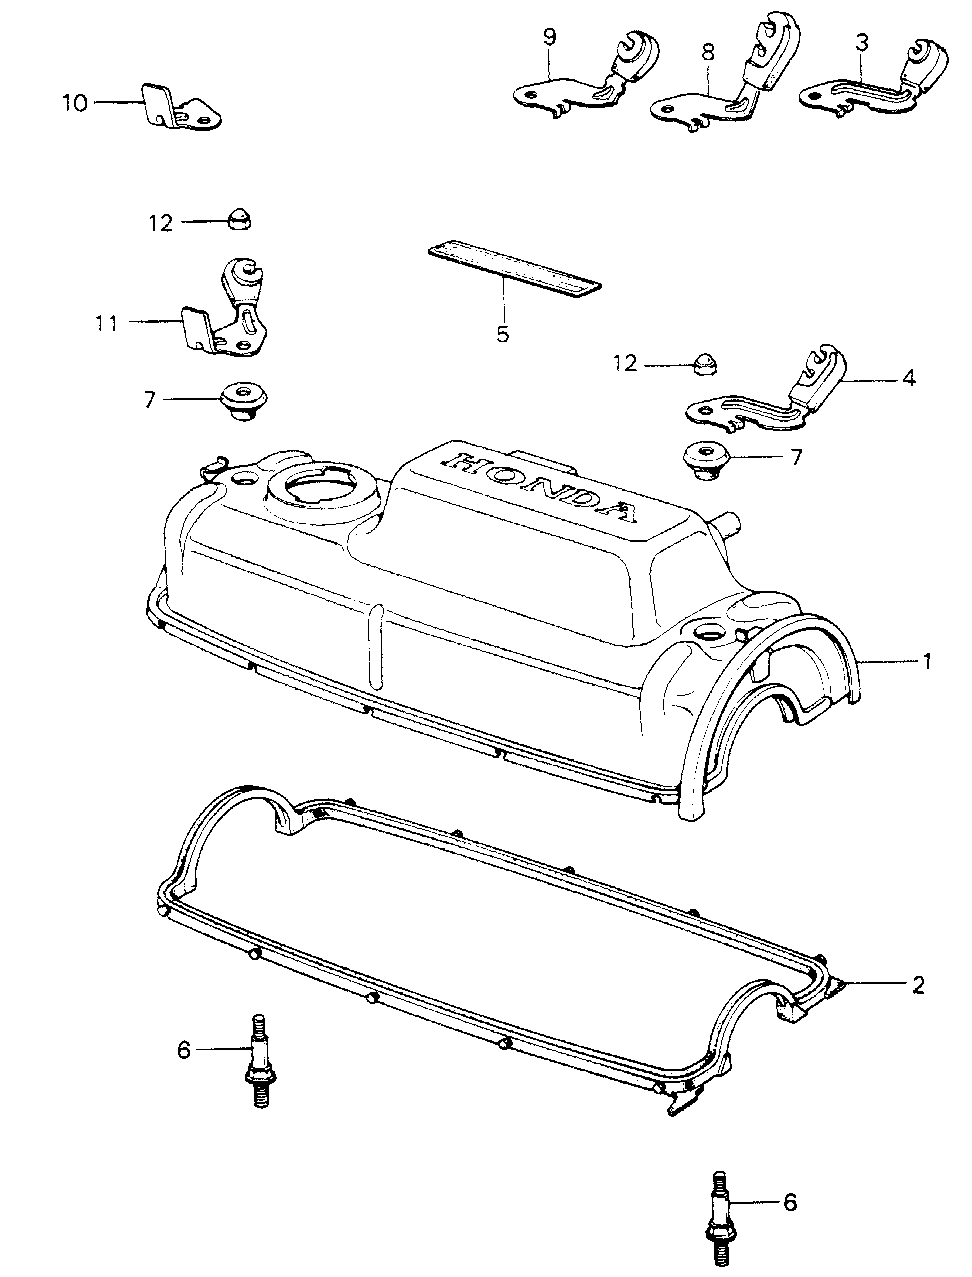 12341-PA6-000 - GASKET, HEAD COVER